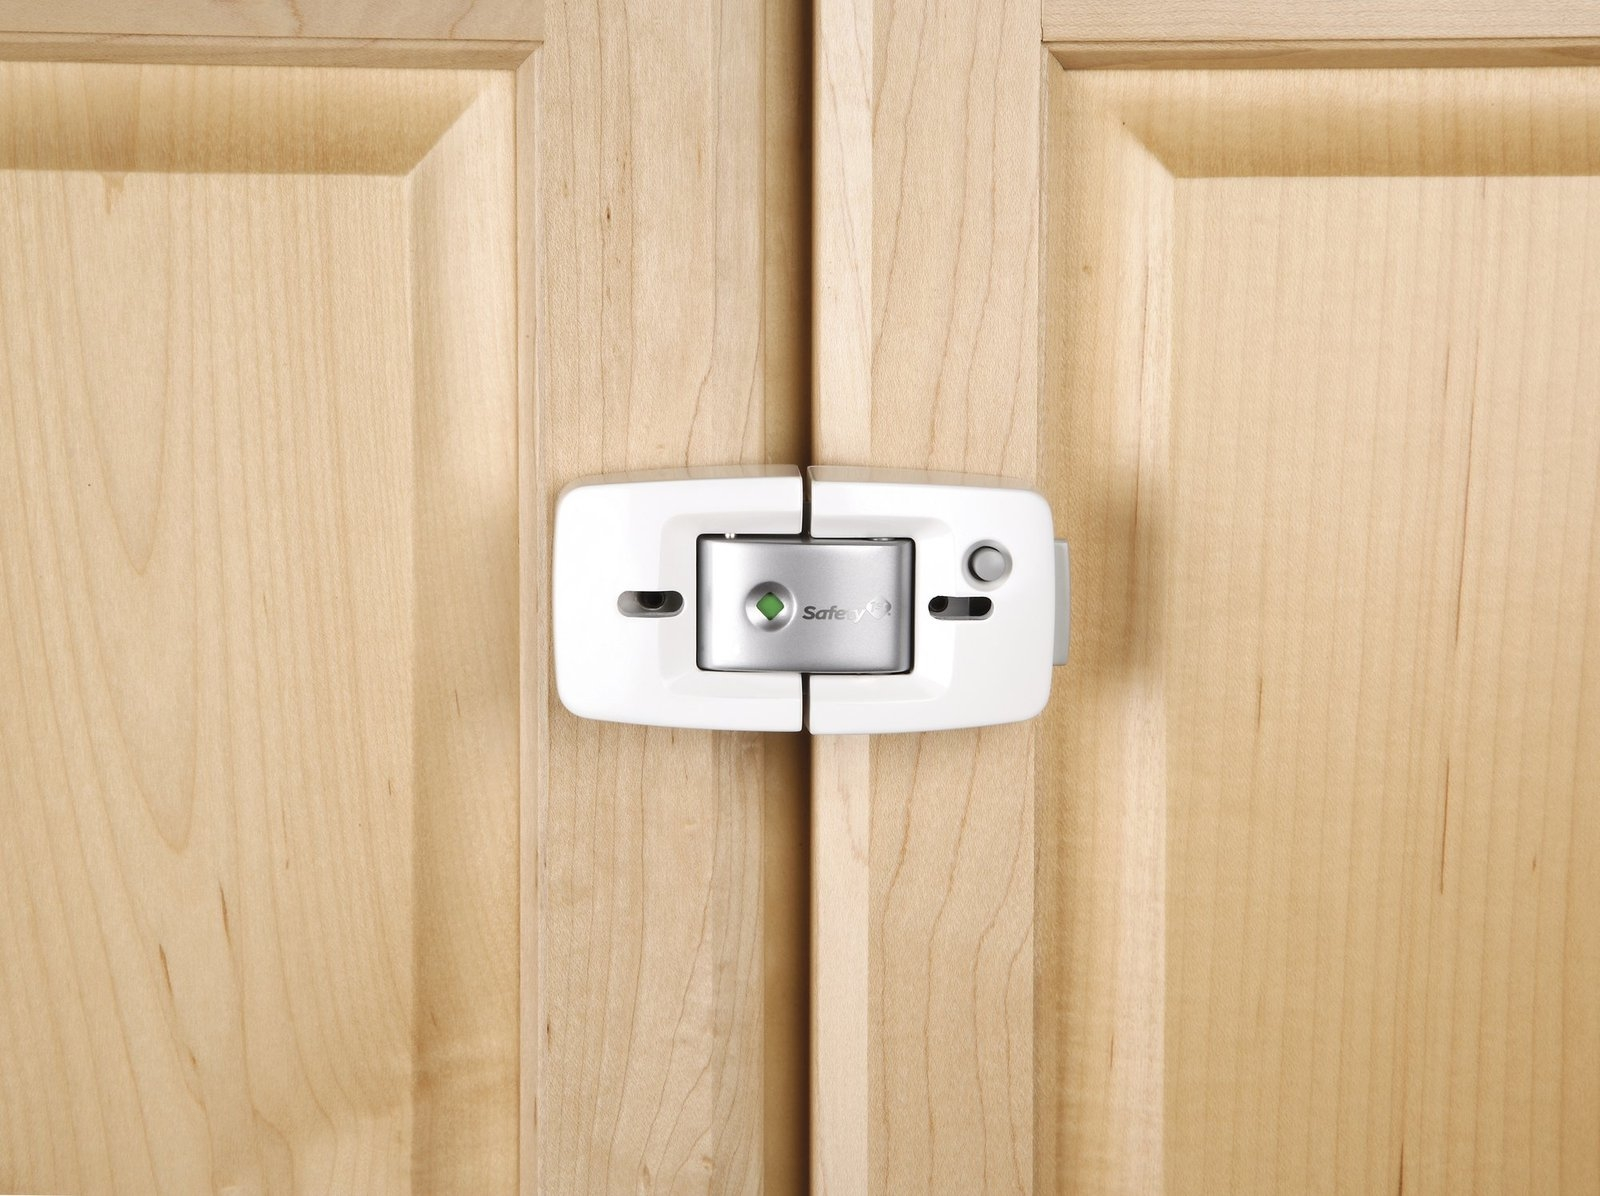 Key Locks For Kitchen Cabinets